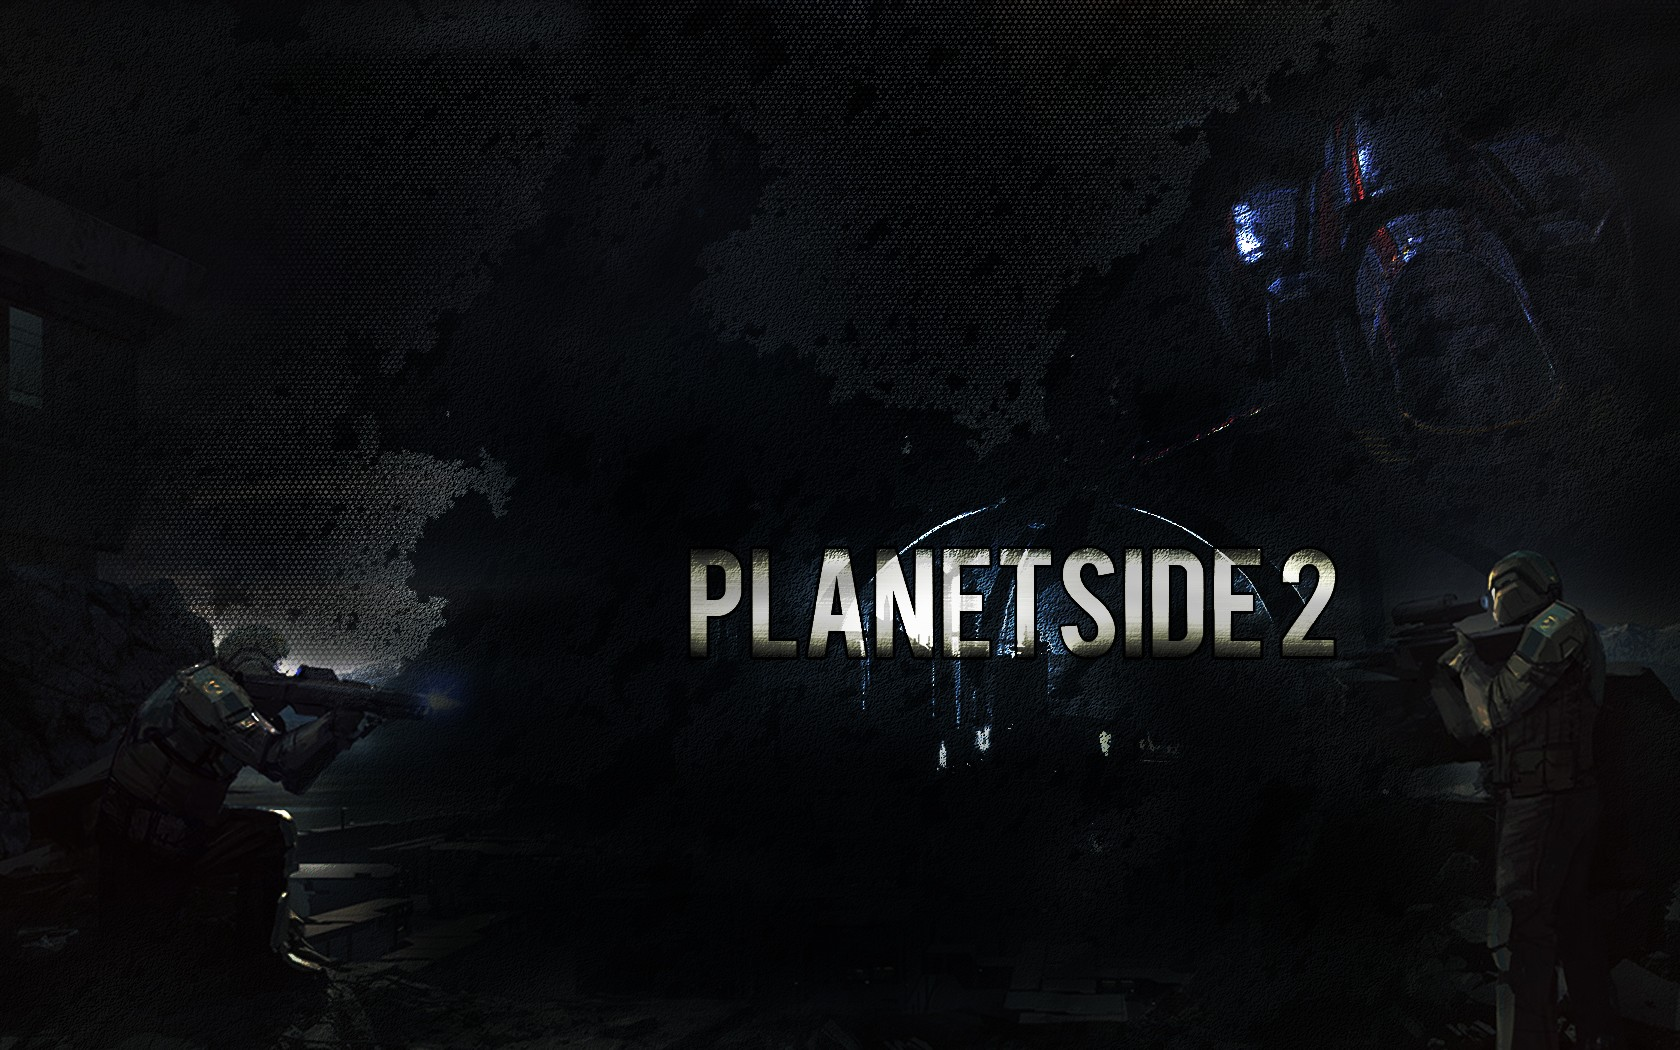 Planetside 2 Wallpaper and Background Image 1680x1050 ID 1680x1050